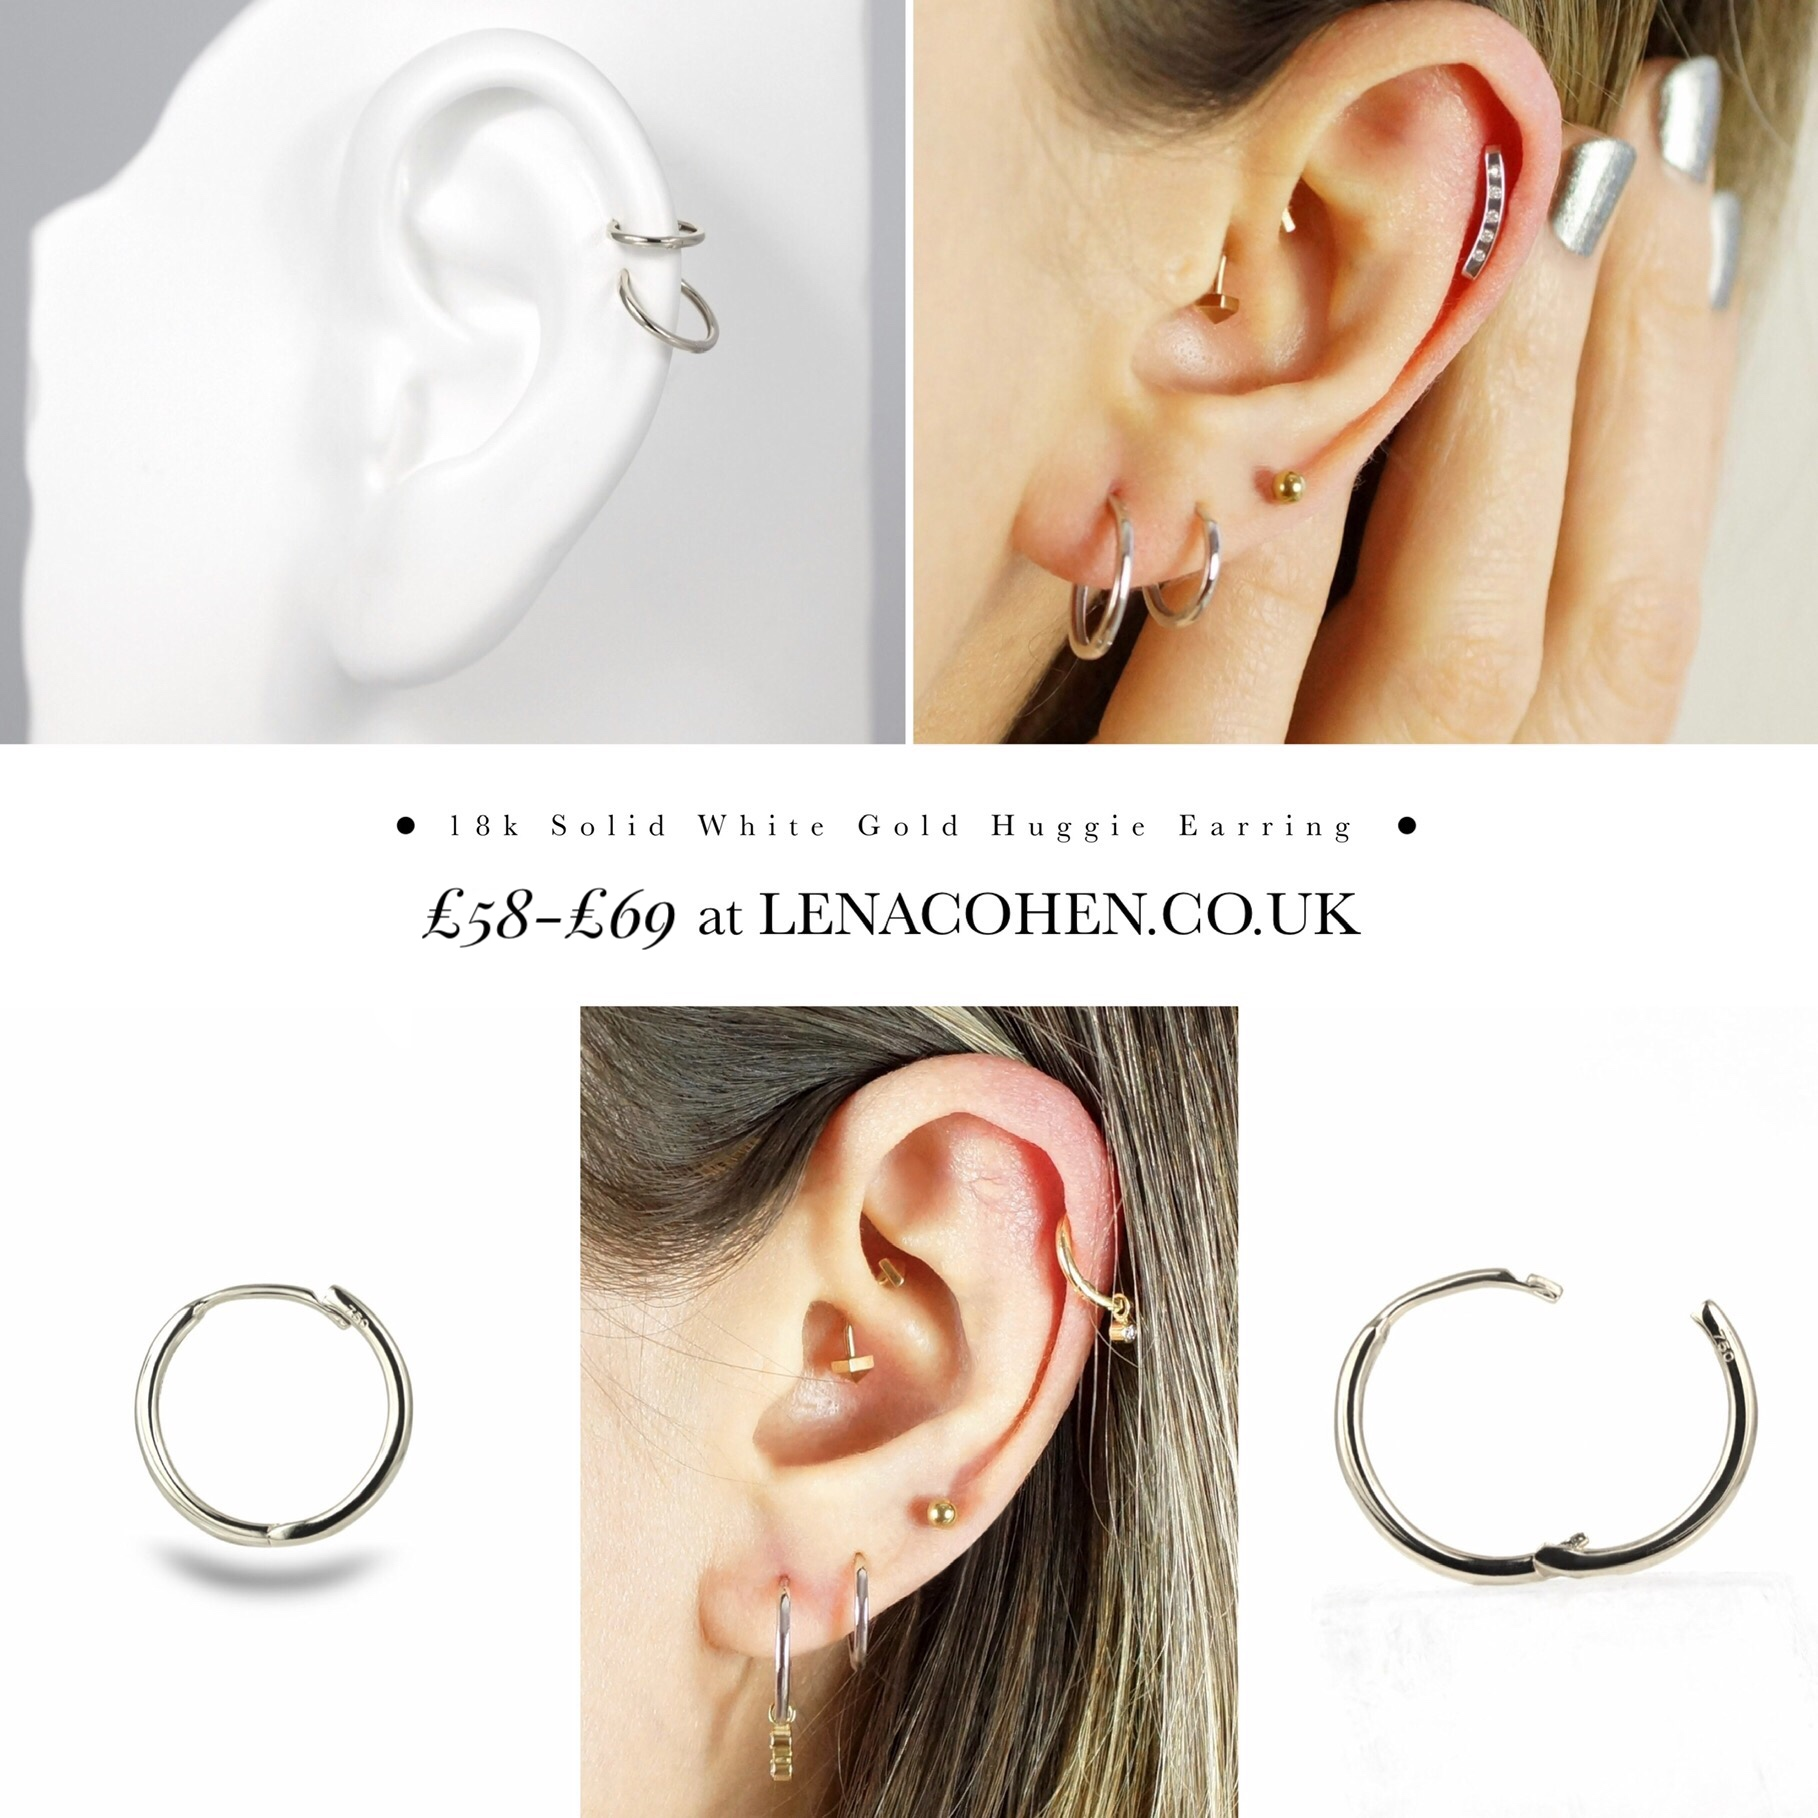 Latest ear piercings for women beautiful and cute ideas, helix, cartilage, diamond piercings, 18k gold, simple & stylish, multiple earrings, ear styling..  Lena Cohen Luxury Piercing Jewellery London